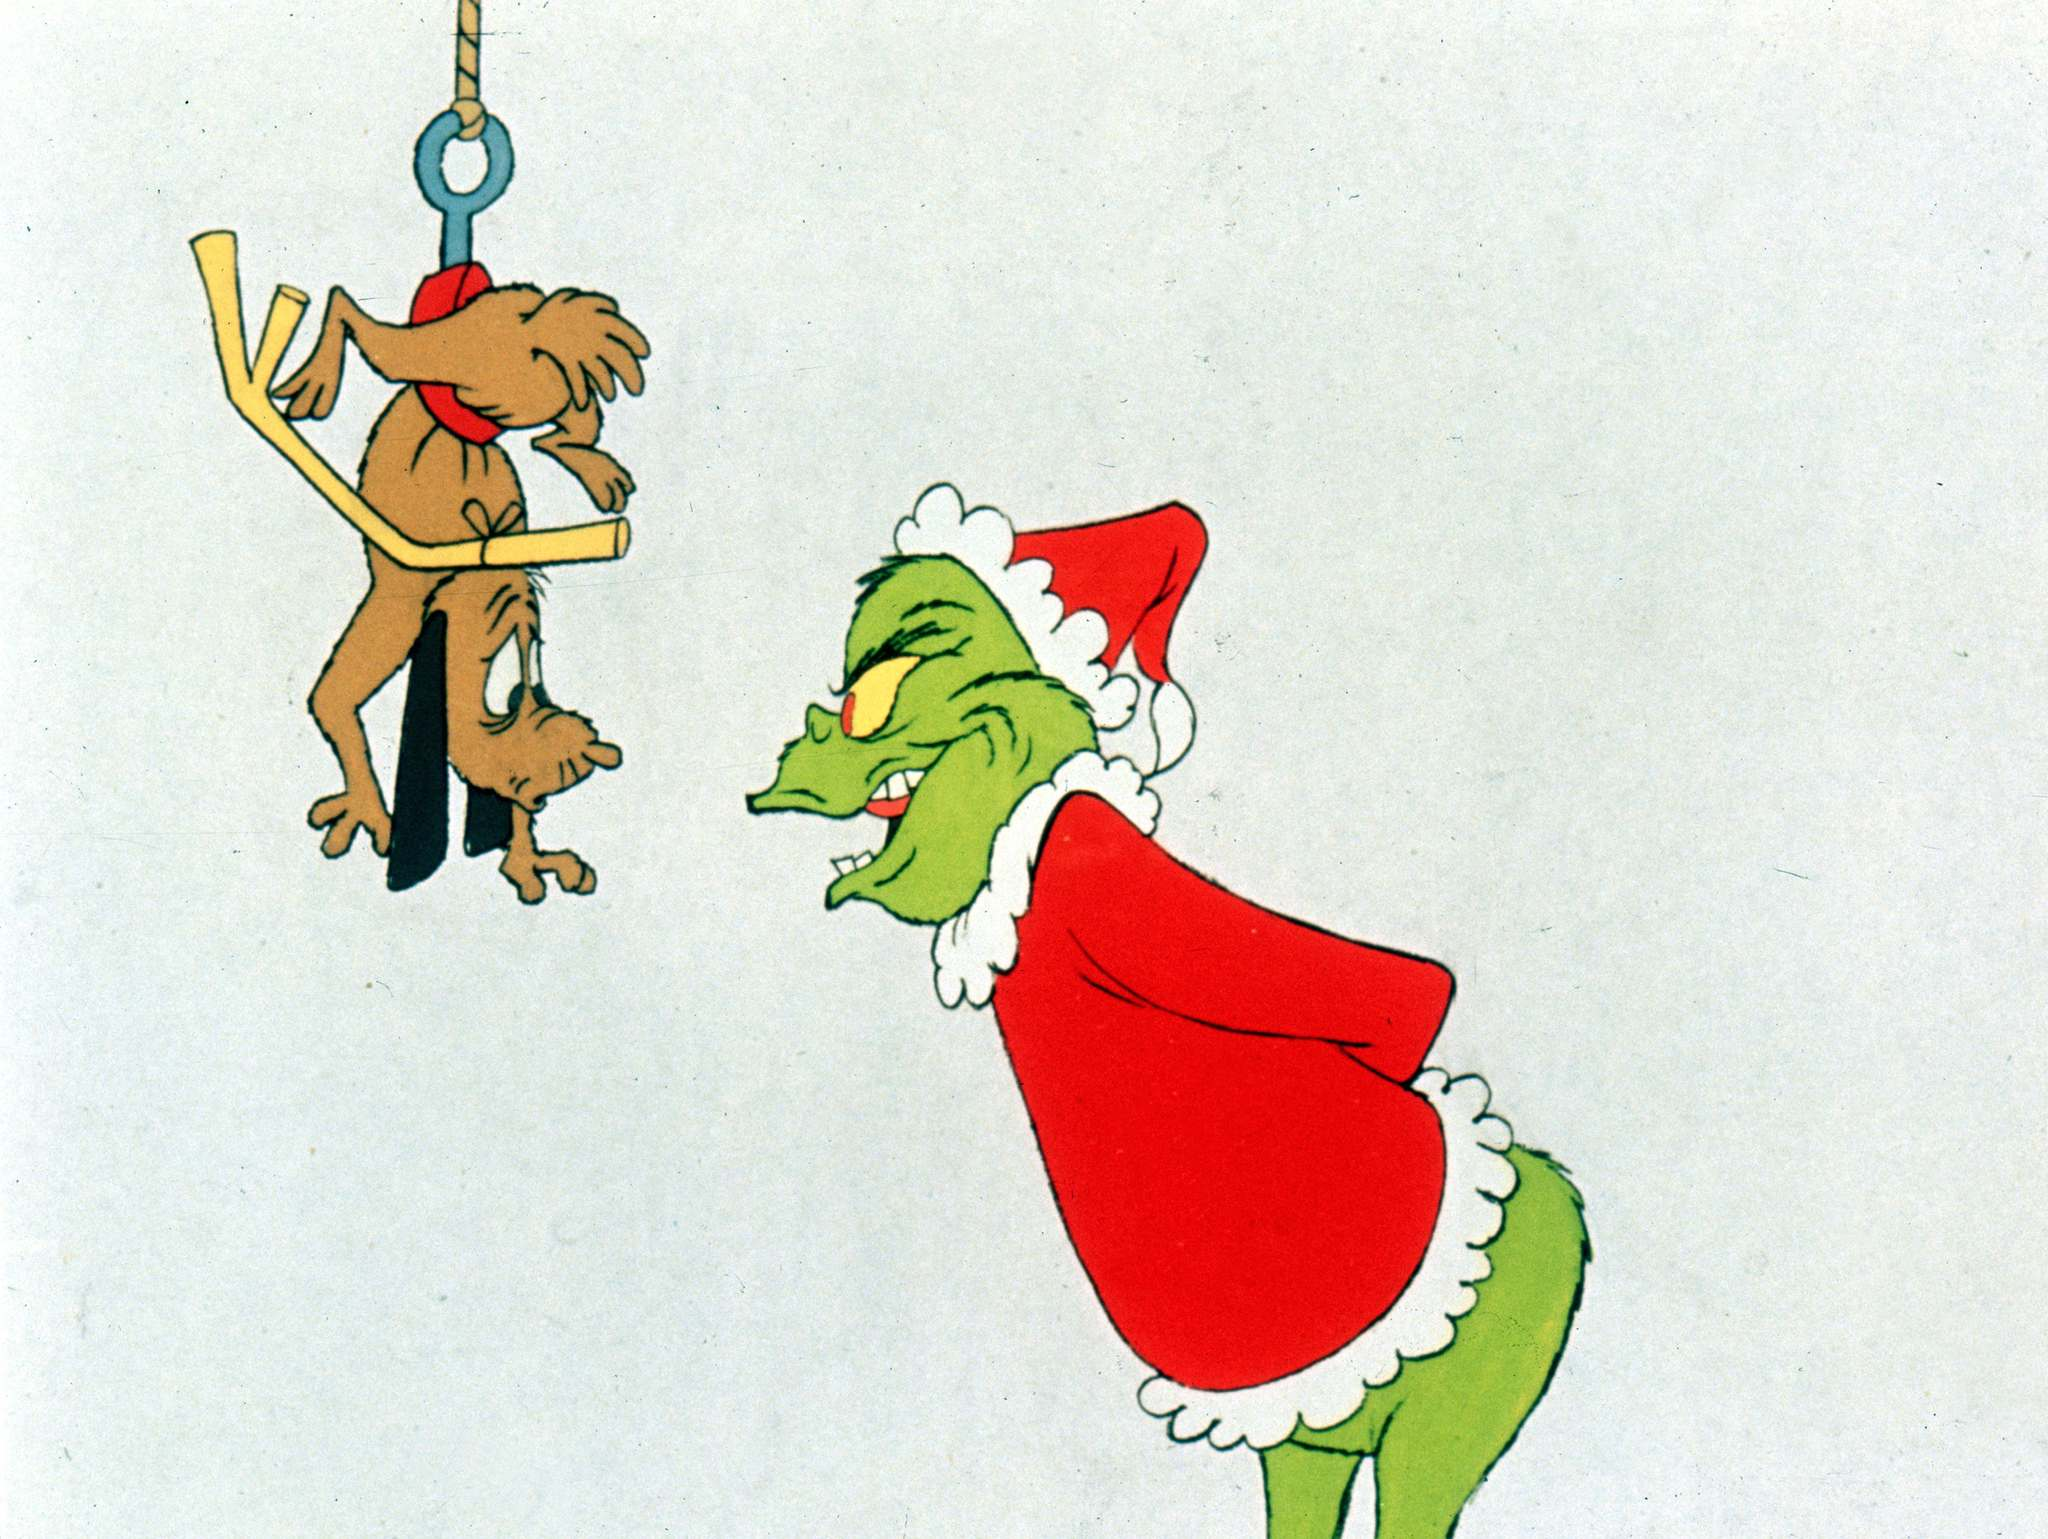 you re an old one mr grinch winnipeg free press https www winnipegfreepress com arts and life entertainment tv youre an old one mr grinch 407549726 html